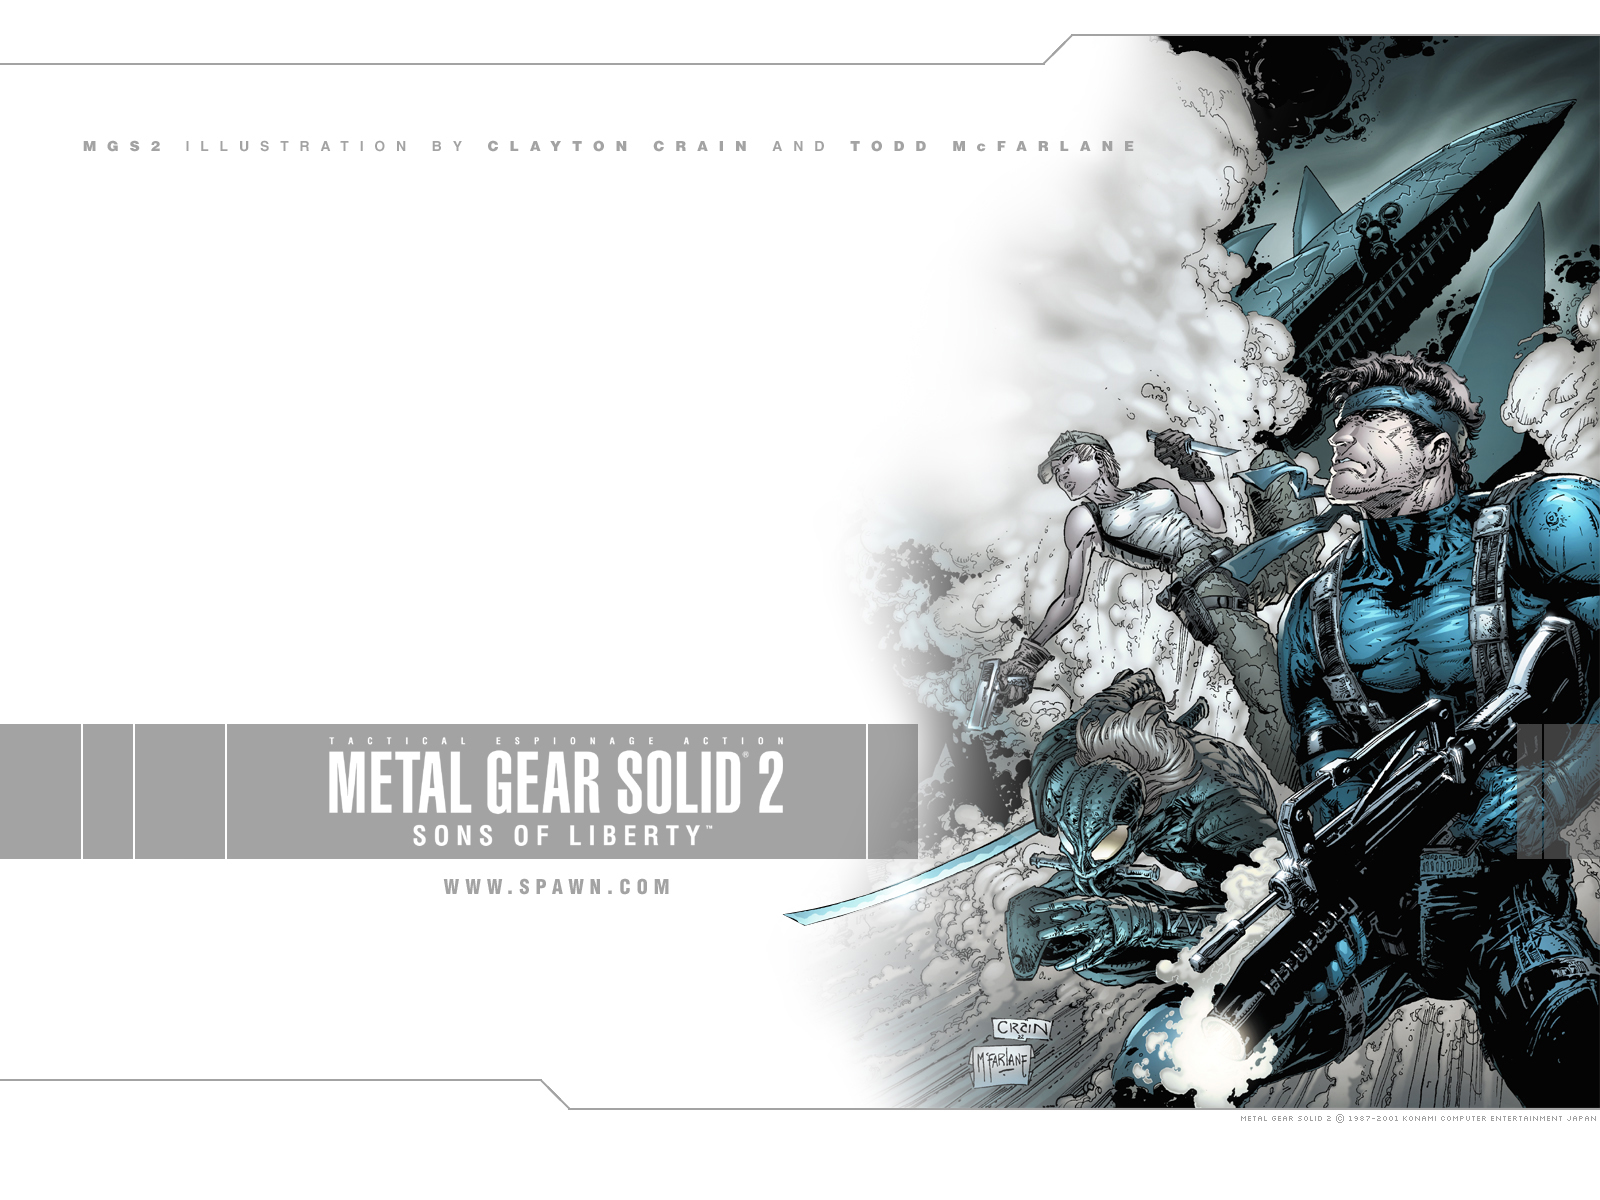 Metal Gear Solid 2 Wallpaper: Metal Gear Solid 2: Sons Of Liberty Wallpaper And